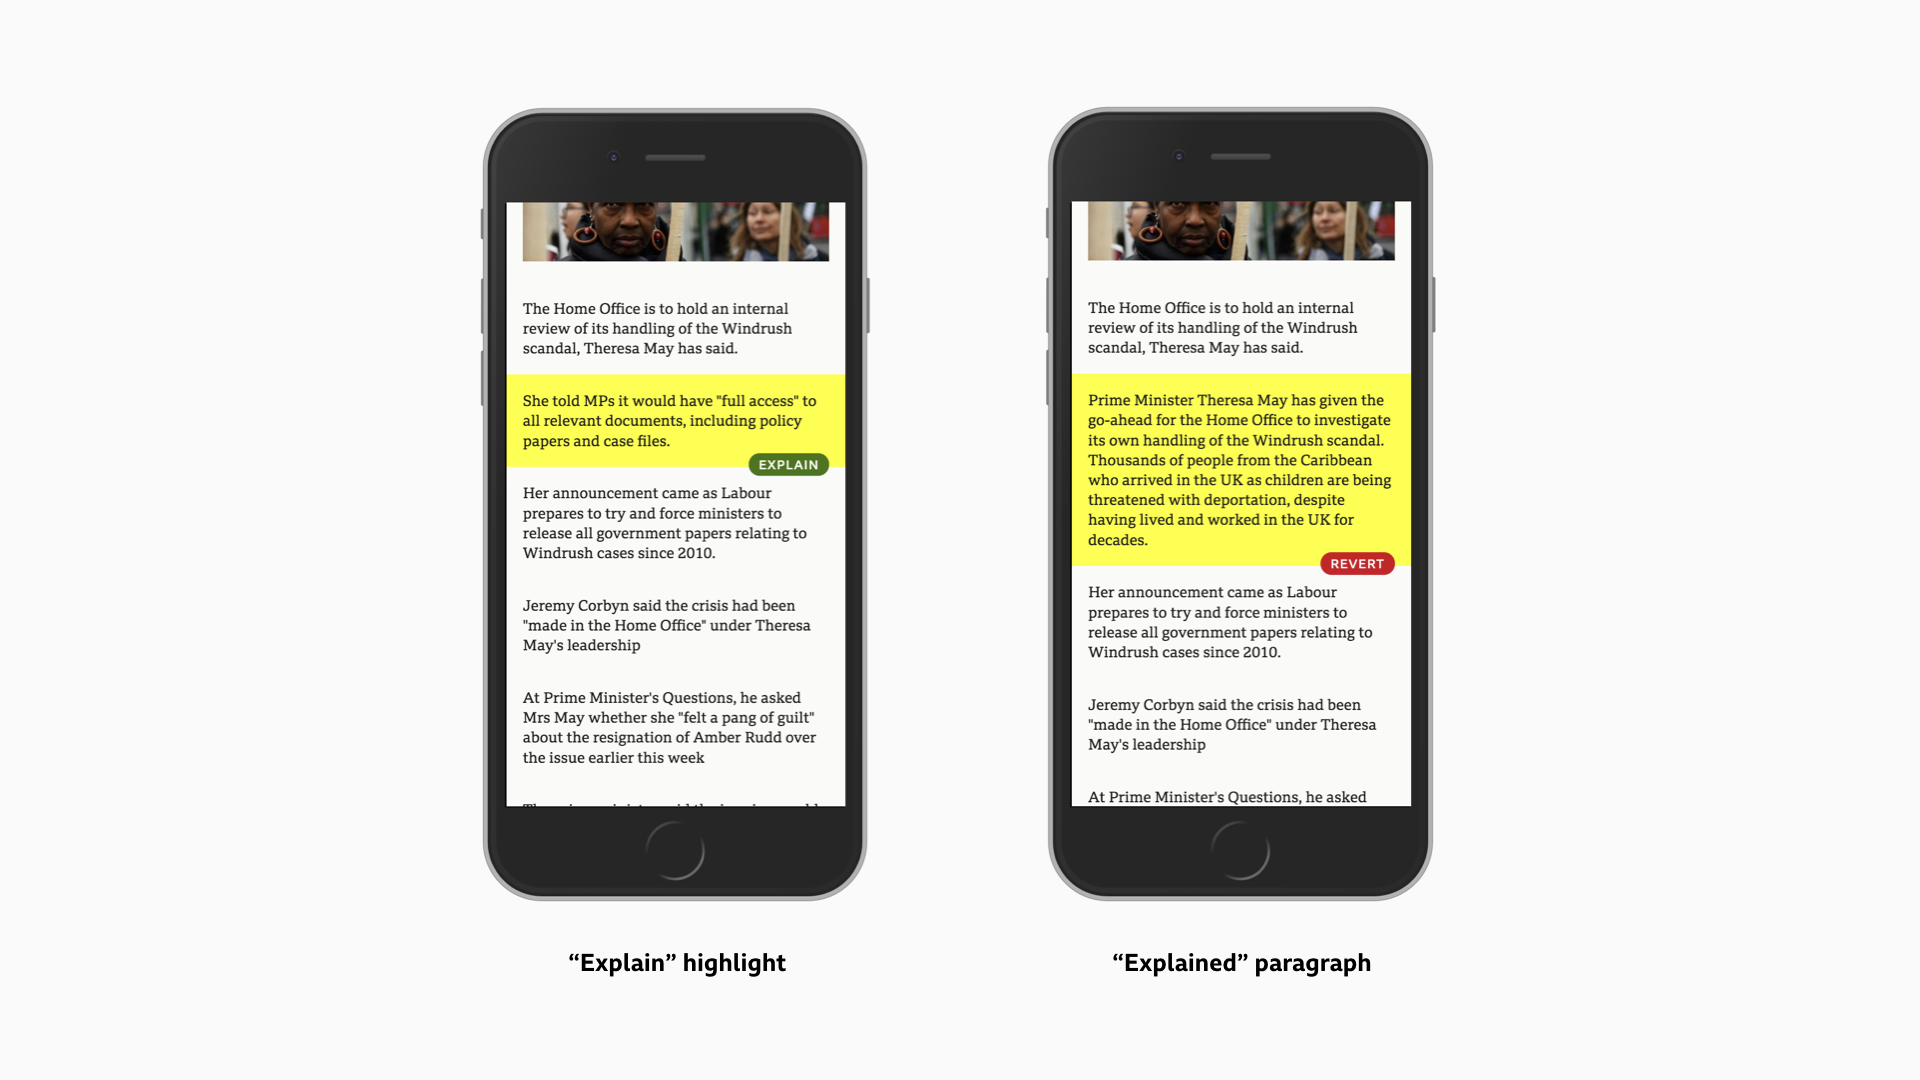 Screenshots of the Simplify prototype - a paragraph of a story is highlighted, and when it is tapped on, it expands to a longer paragraph with a longer description.